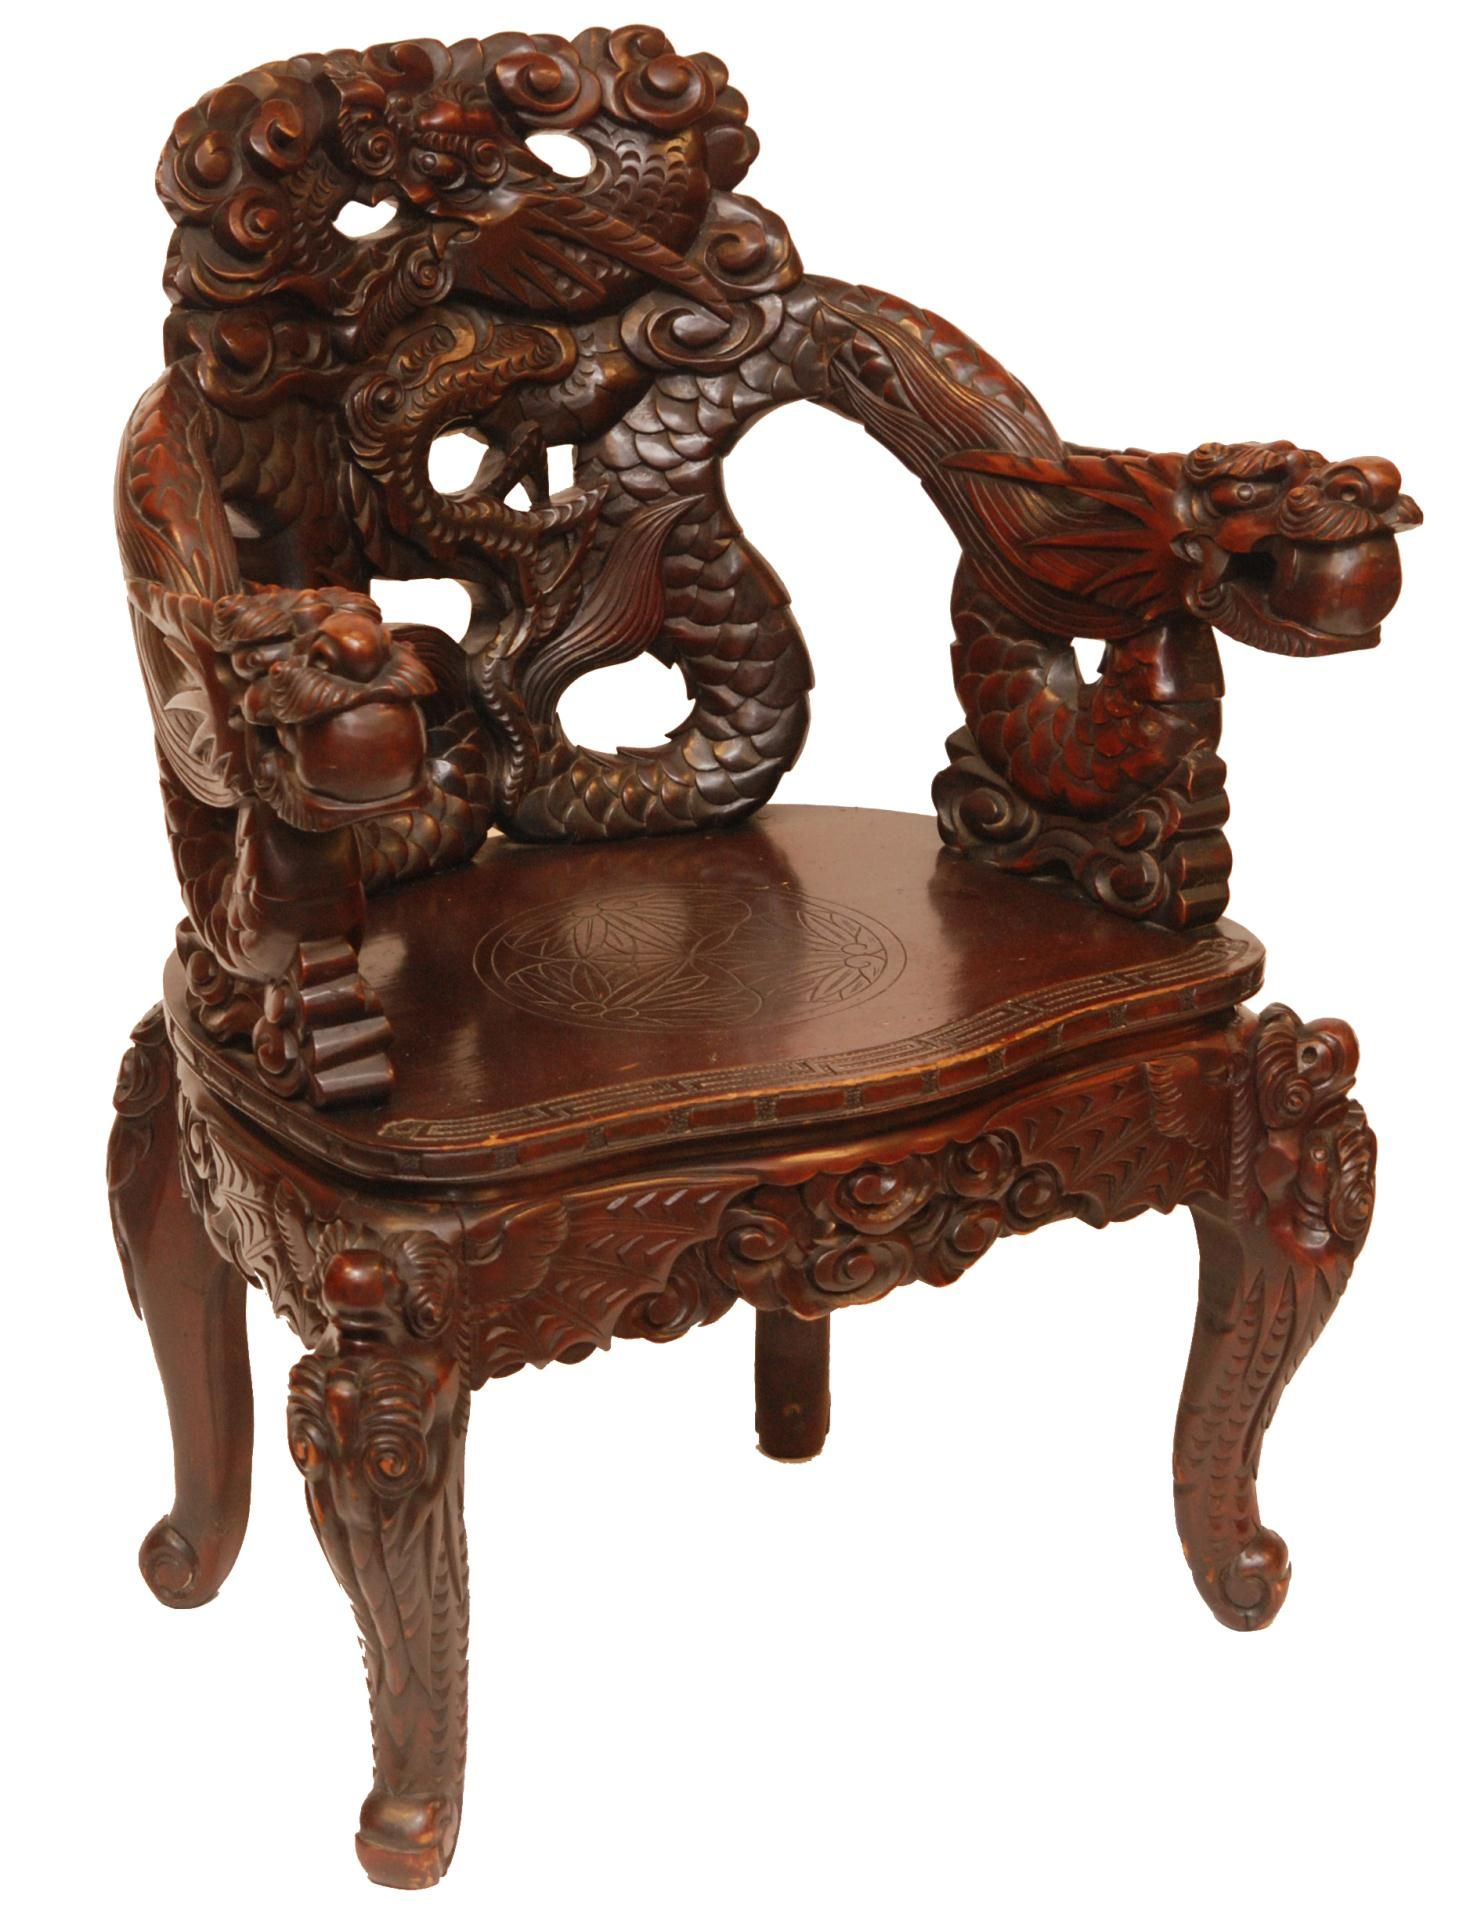 chinese wood carvings | 557 chinese carved wooden dragons chair chinese  hand carved and fully . - Chinese Wood Carvings 557 Chinese Carved Wooden Dragons Chair